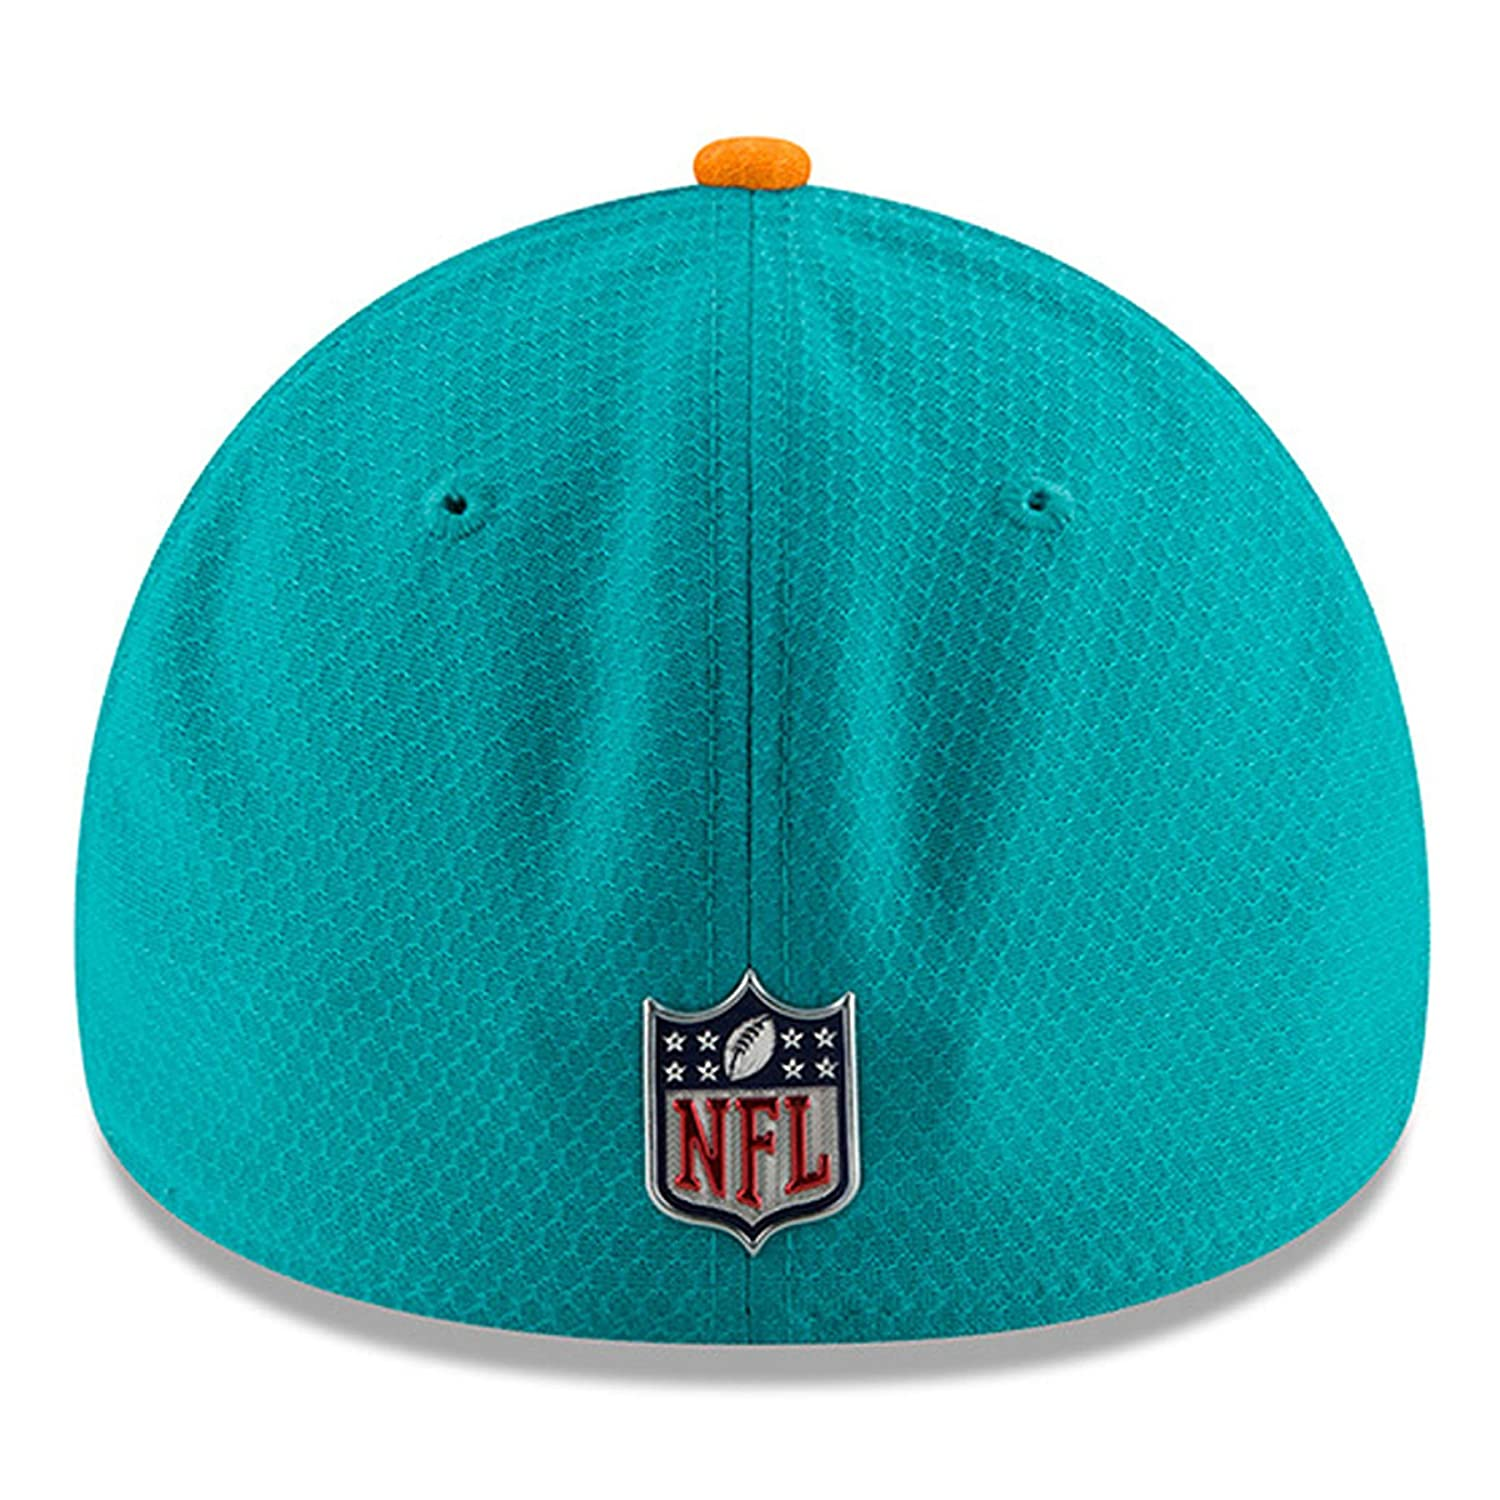 ... discount code for new era 39thirty cap nfl 2017 sideline miami dolphins  ad3cb 29cfd 48109f3a3